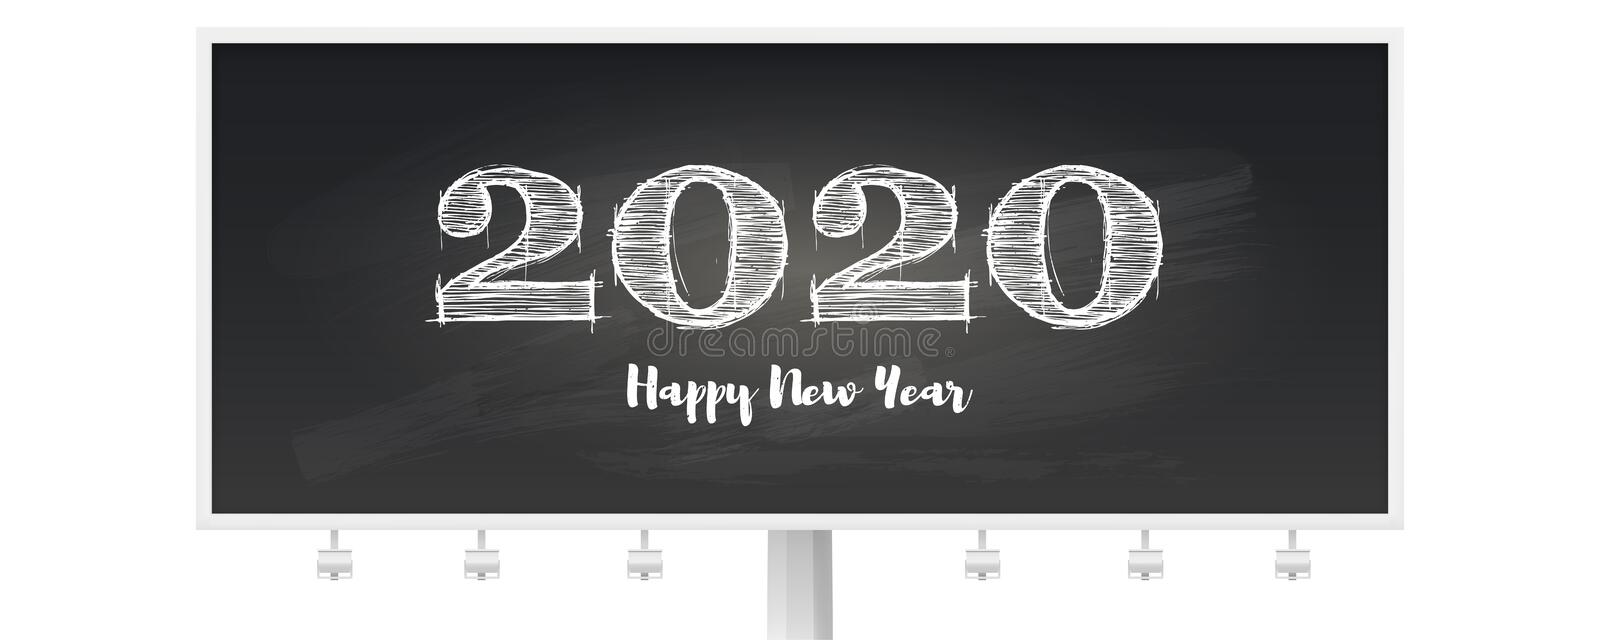 Happy New Year 2020 greeting poster. Handwritten text on billboard. Stylish retro lettering for celebration of Christmas. On blackboard with scratches. Vector stock illustration